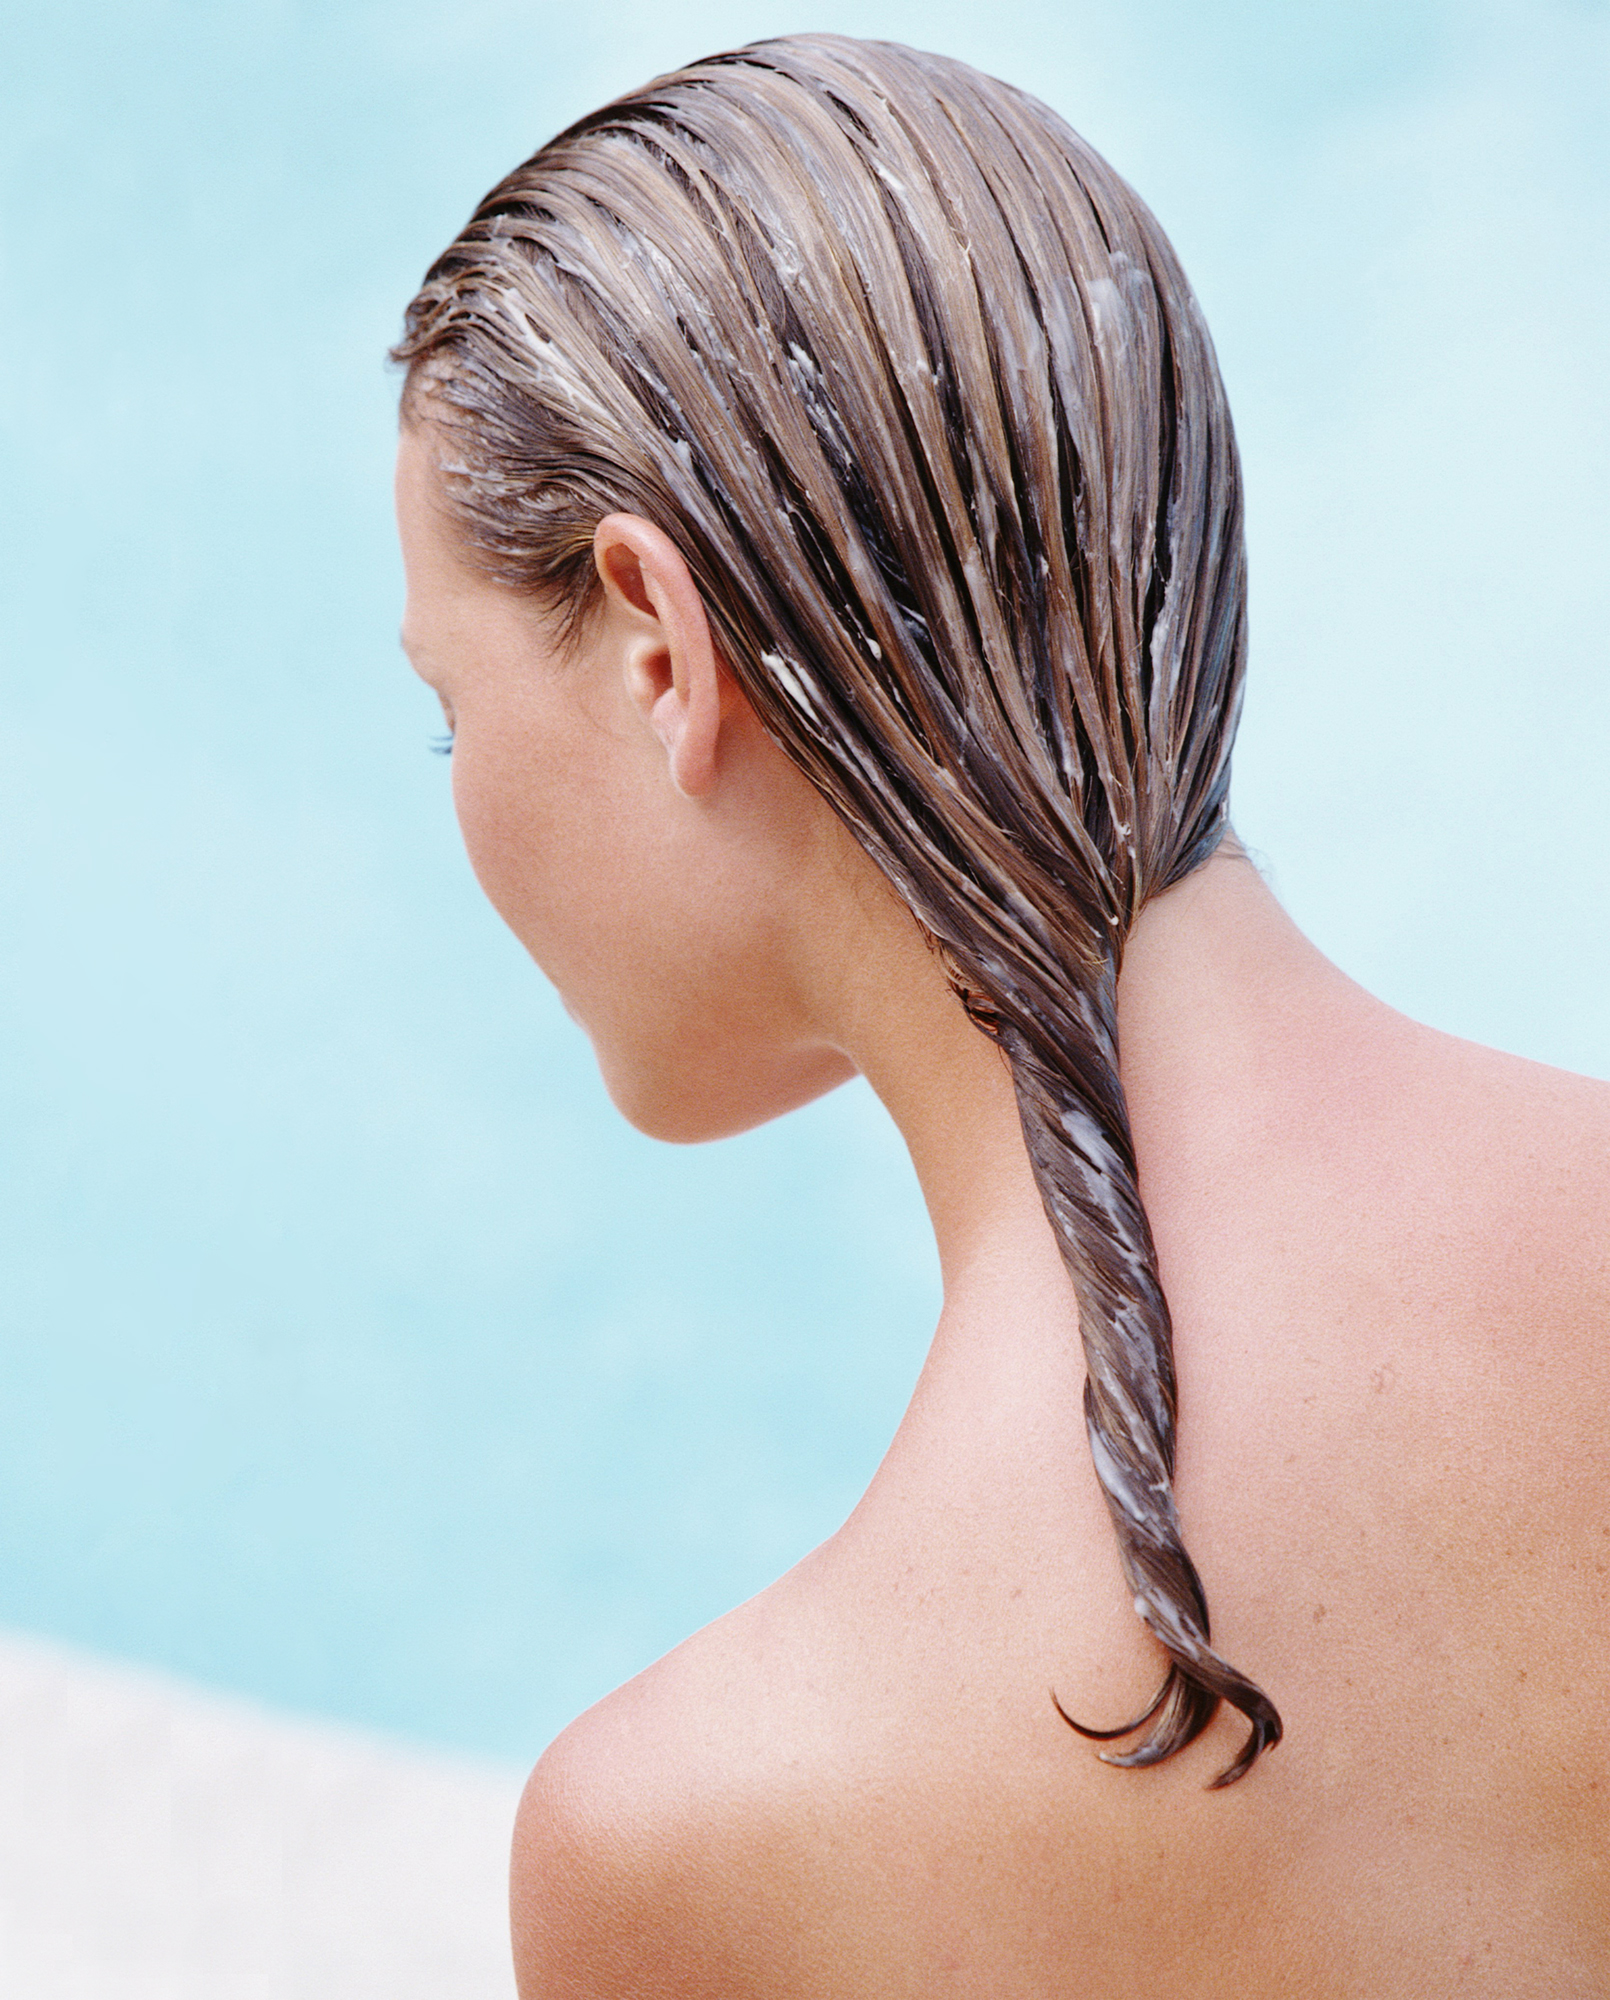 11 Healthy Hair Habits to Adopt Right Now | Real Simple